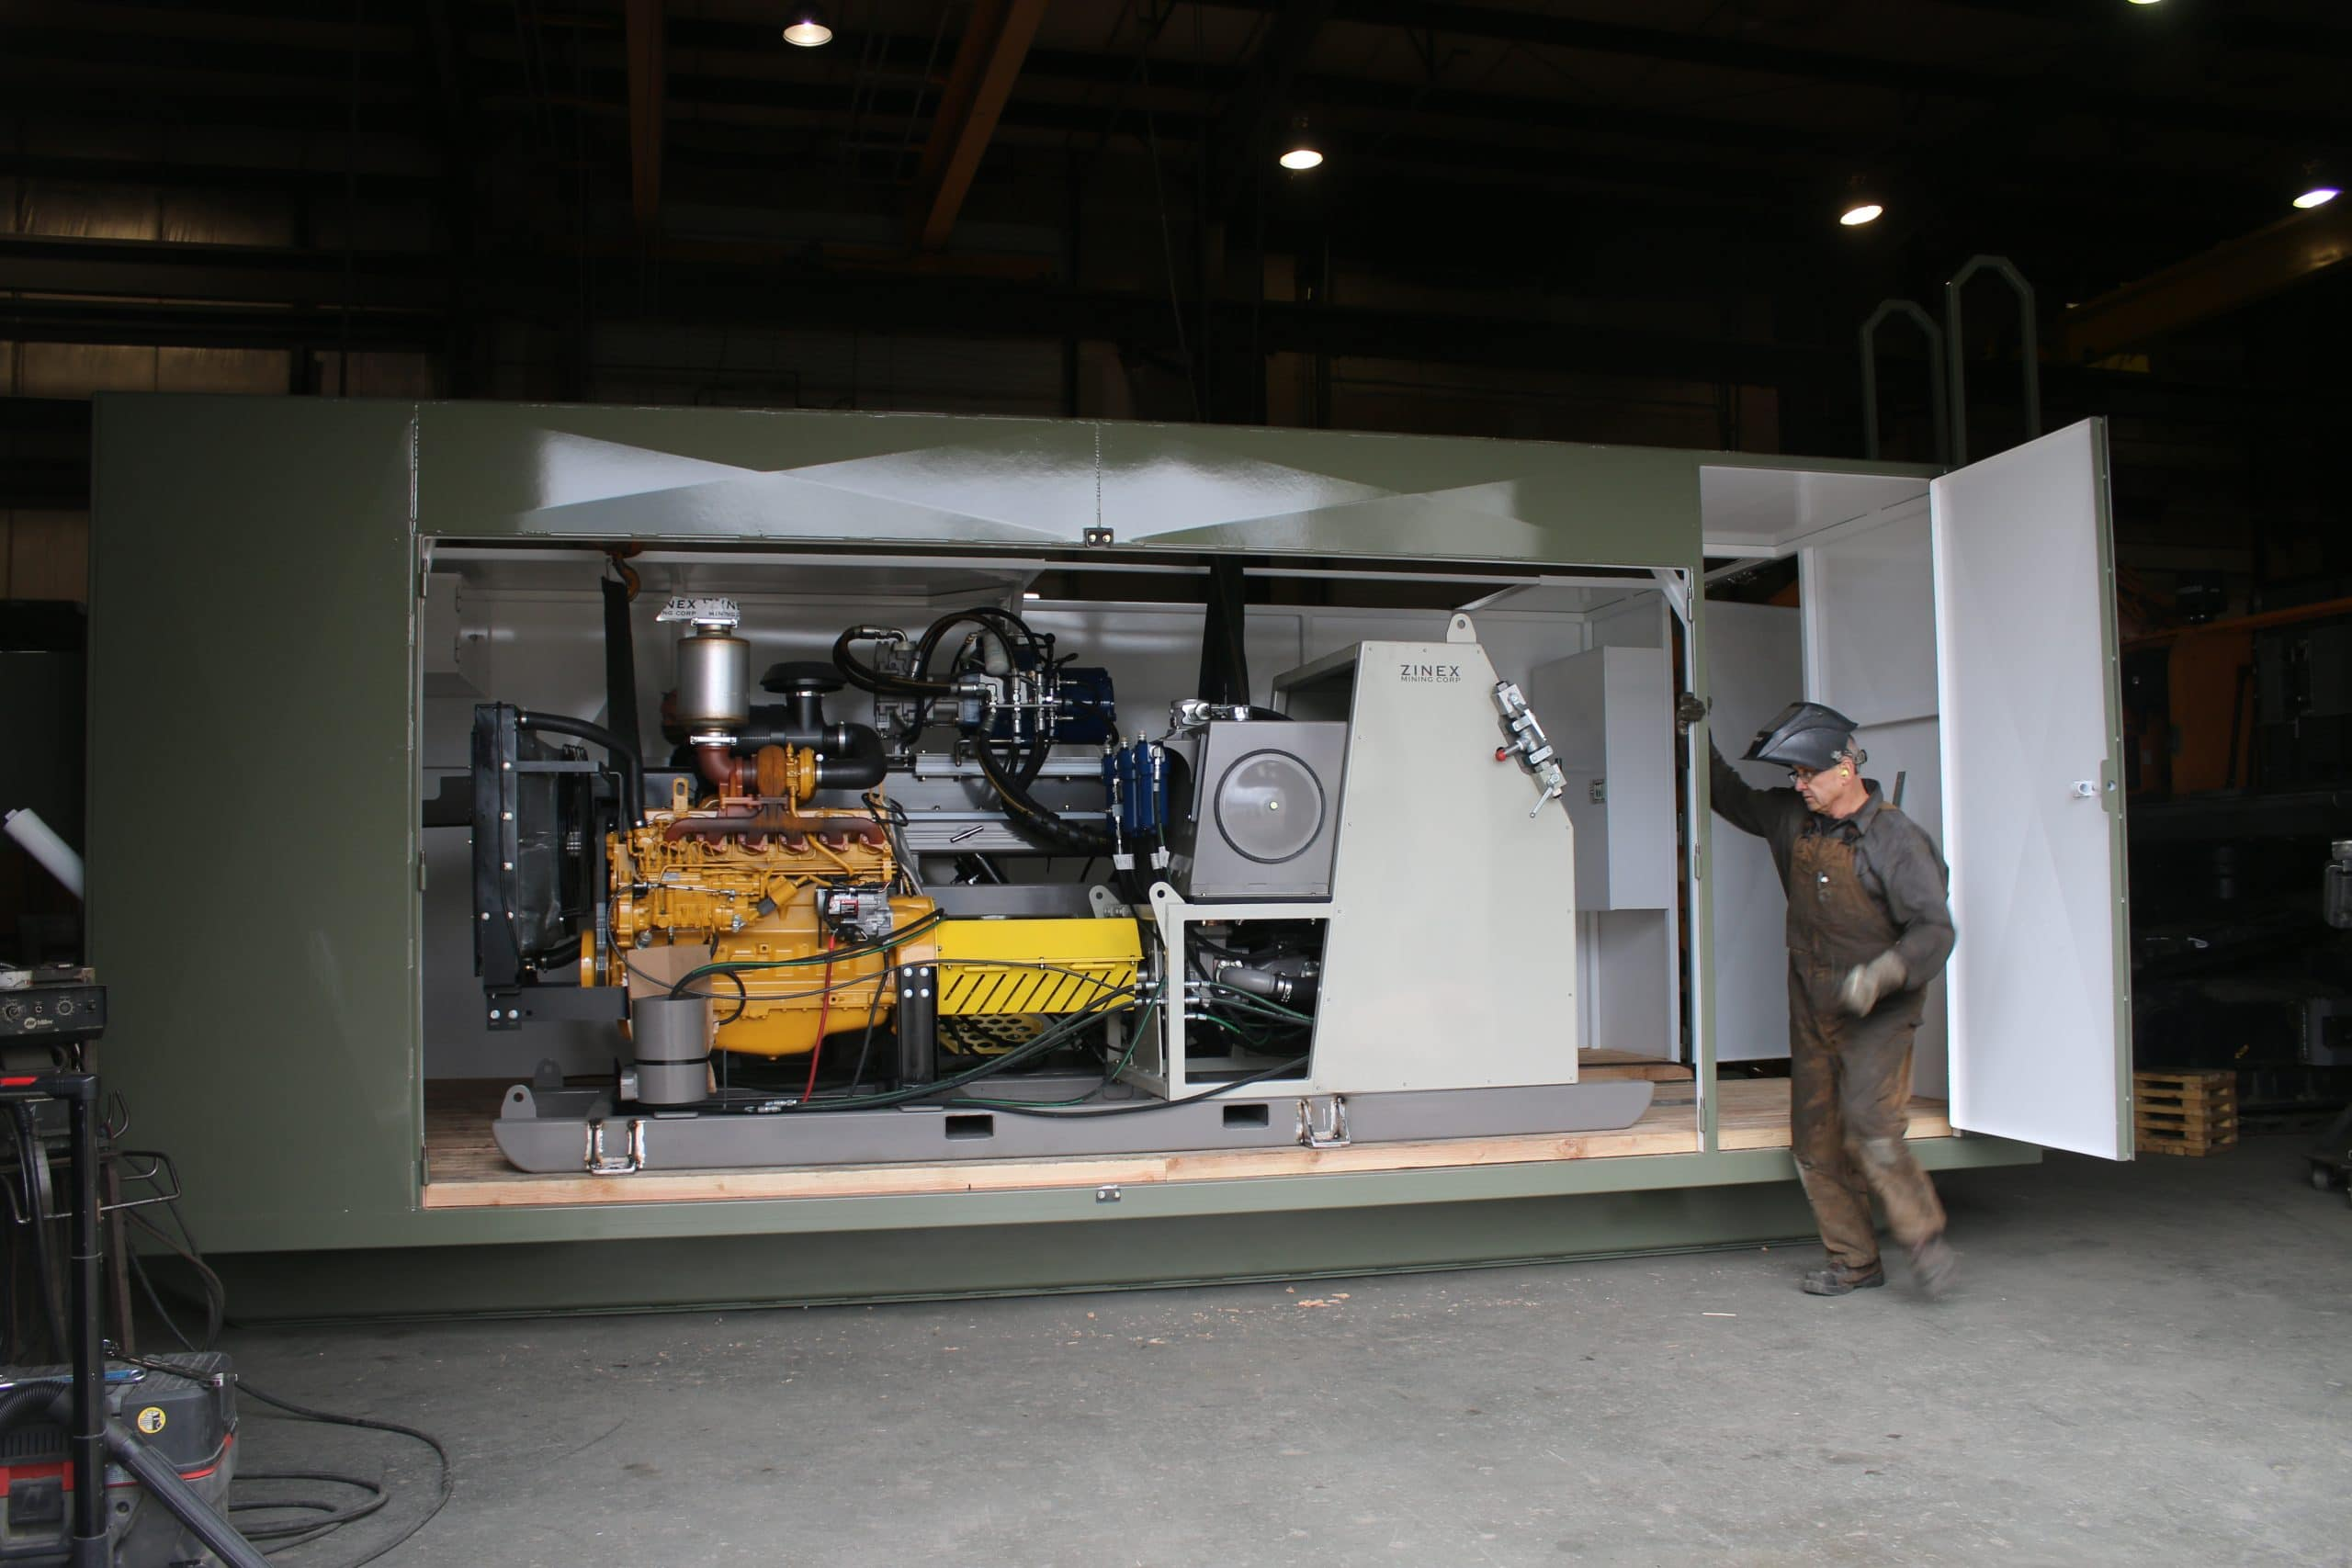 Darcy Lead on Drill Shack Project